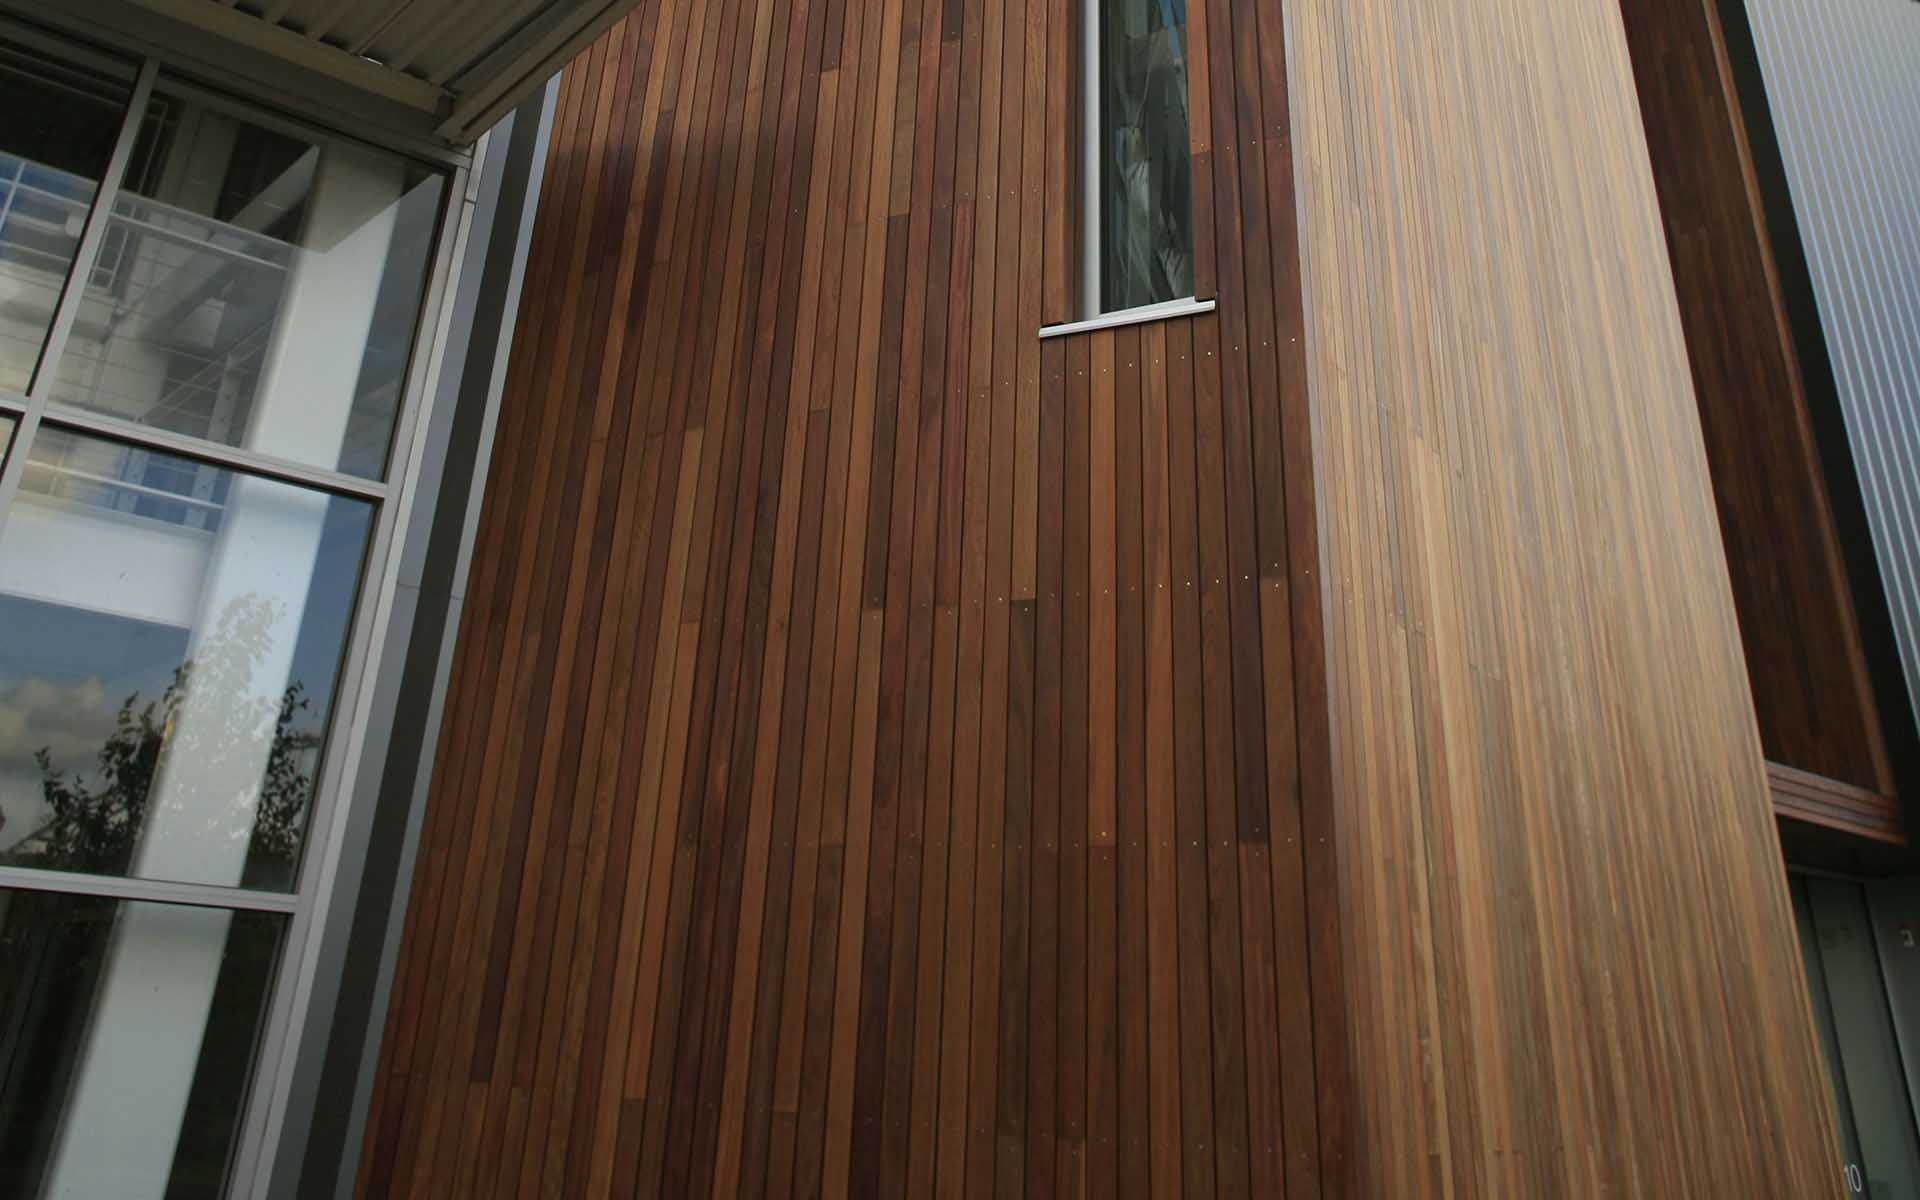 Wood Siding Ipe Batu Amp Cumaru Hardwood Rainscreen Siding